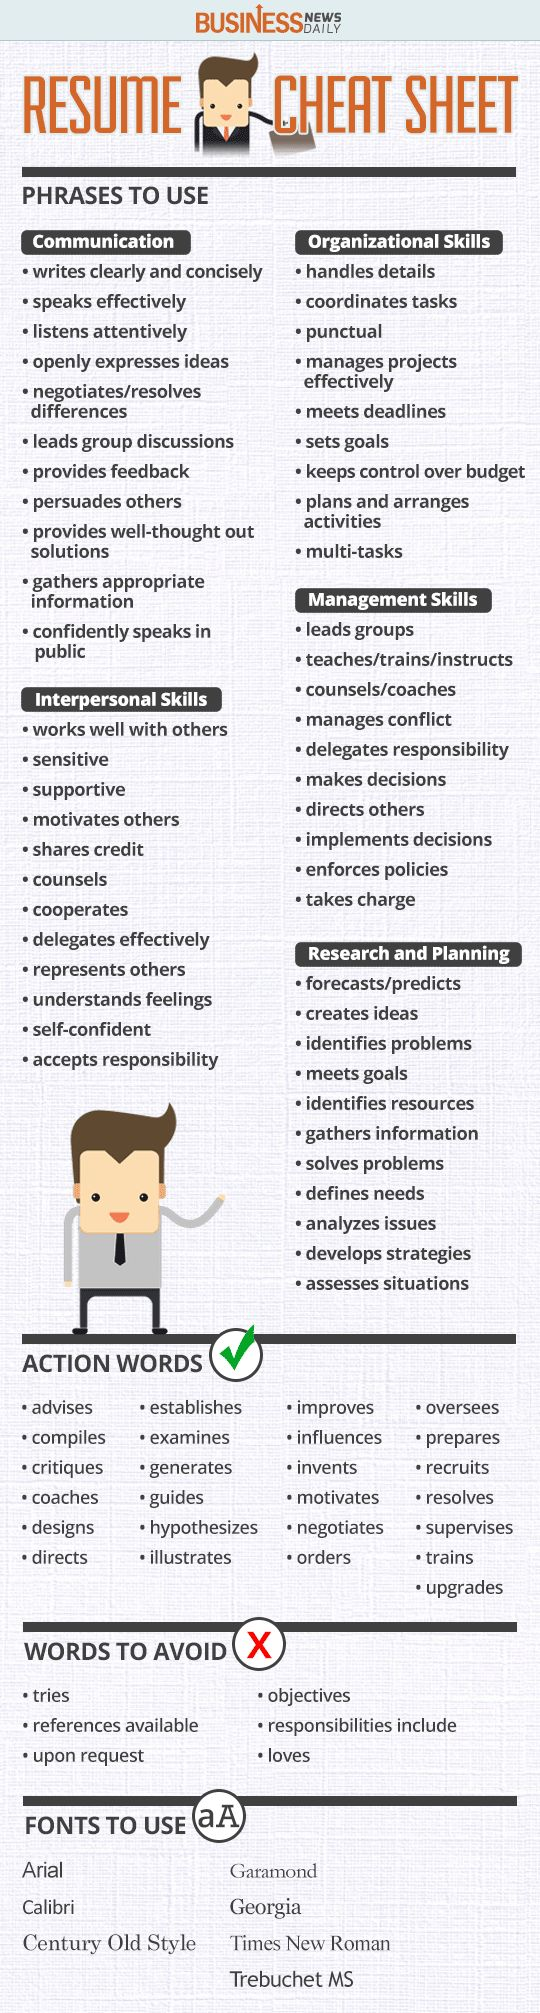 Opposenewapstandardsus  Marvellous  Ideas About Resume On Pinterest  Cv Format Resume Cv And  With Gorgeous Resume Cheat Sheet Infographic Andrews Almost Done With A Complete Unit On Employment Which With Endearing How To Write A Cv Resume Also My Resume Is Attached In Addition Software Tester Resume And Sample Teen Resume As Well As Security Resume Examples Additionally Sample Resume Formats From Pinterestcom With Opposenewapstandardsus  Gorgeous  Ideas About Resume On Pinterest  Cv Format Resume Cv And  With Endearing Resume Cheat Sheet Infographic Andrews Almost Done With A Complete Unit On Employment Which And Marvellous How To Write A Cv Resume Also My Resume Is Attached In Addition Software Tester Resume From Pinterestcom